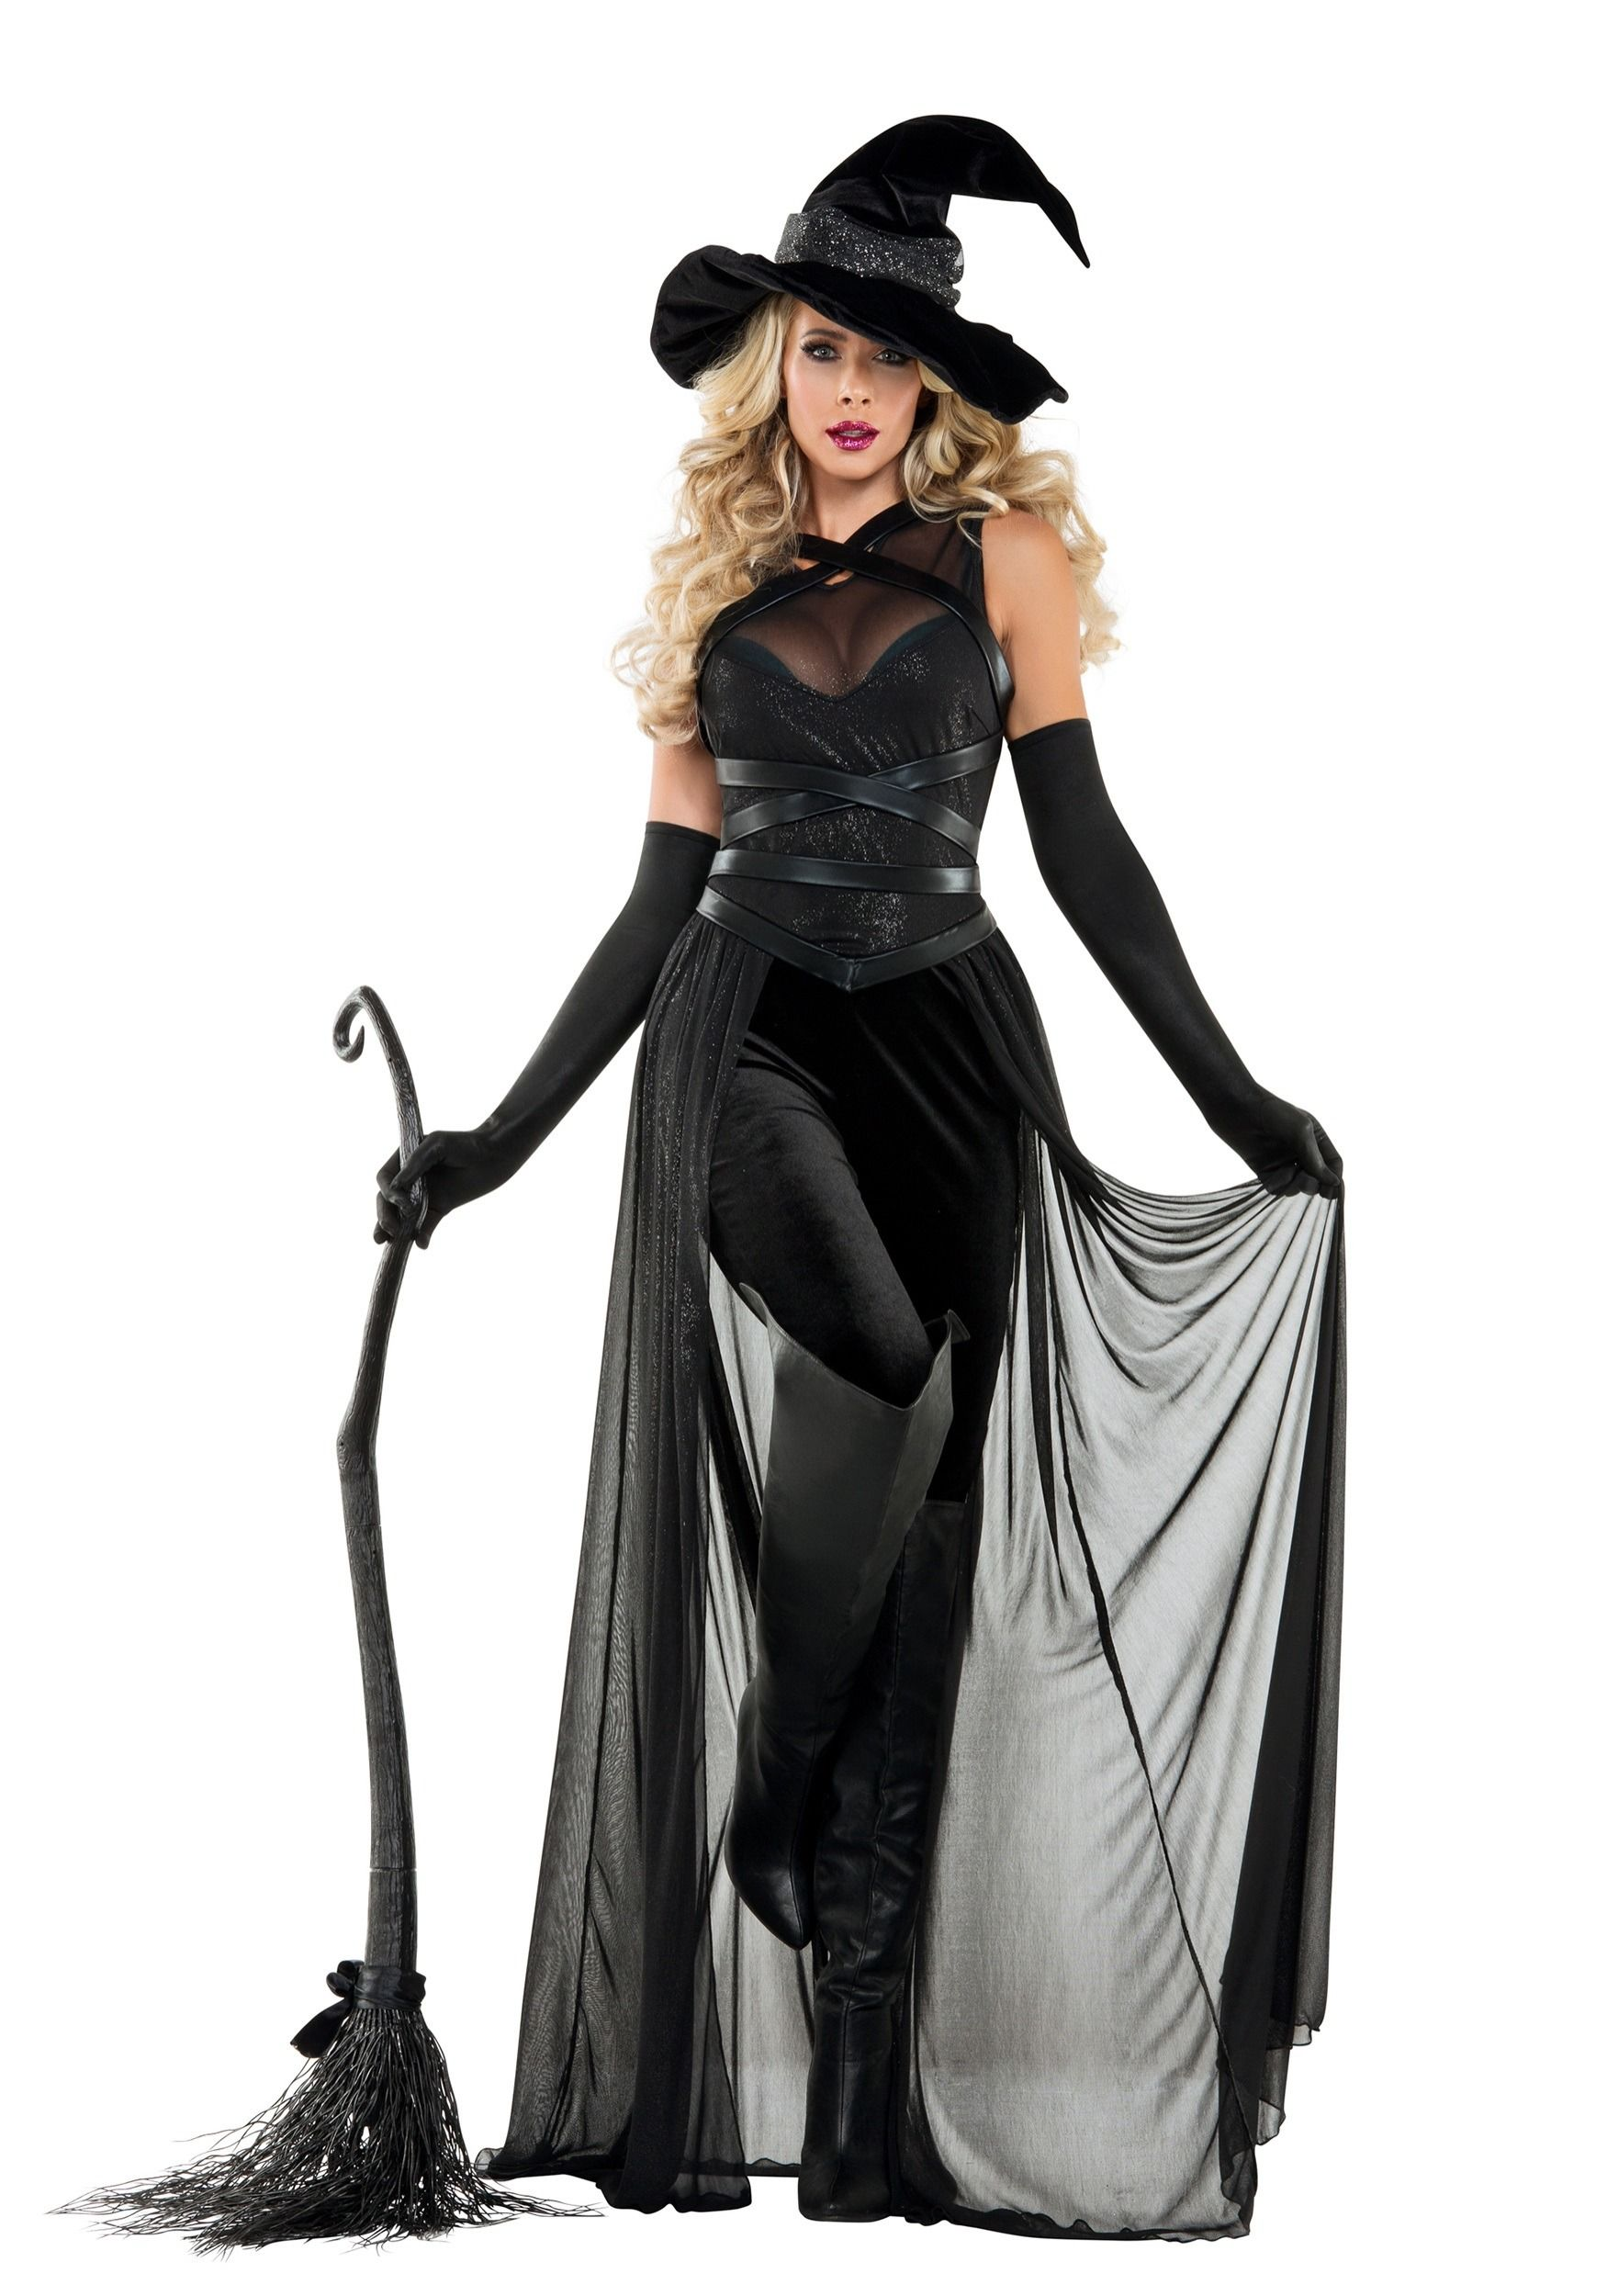 This Womenu0027s Raven Witch Costume is a unique and detailed take on the traditional witch costume idea.  sc 1 st  Pinterest & This Womenu0027s Raven Witch Costume is a unique and detailed take on ...